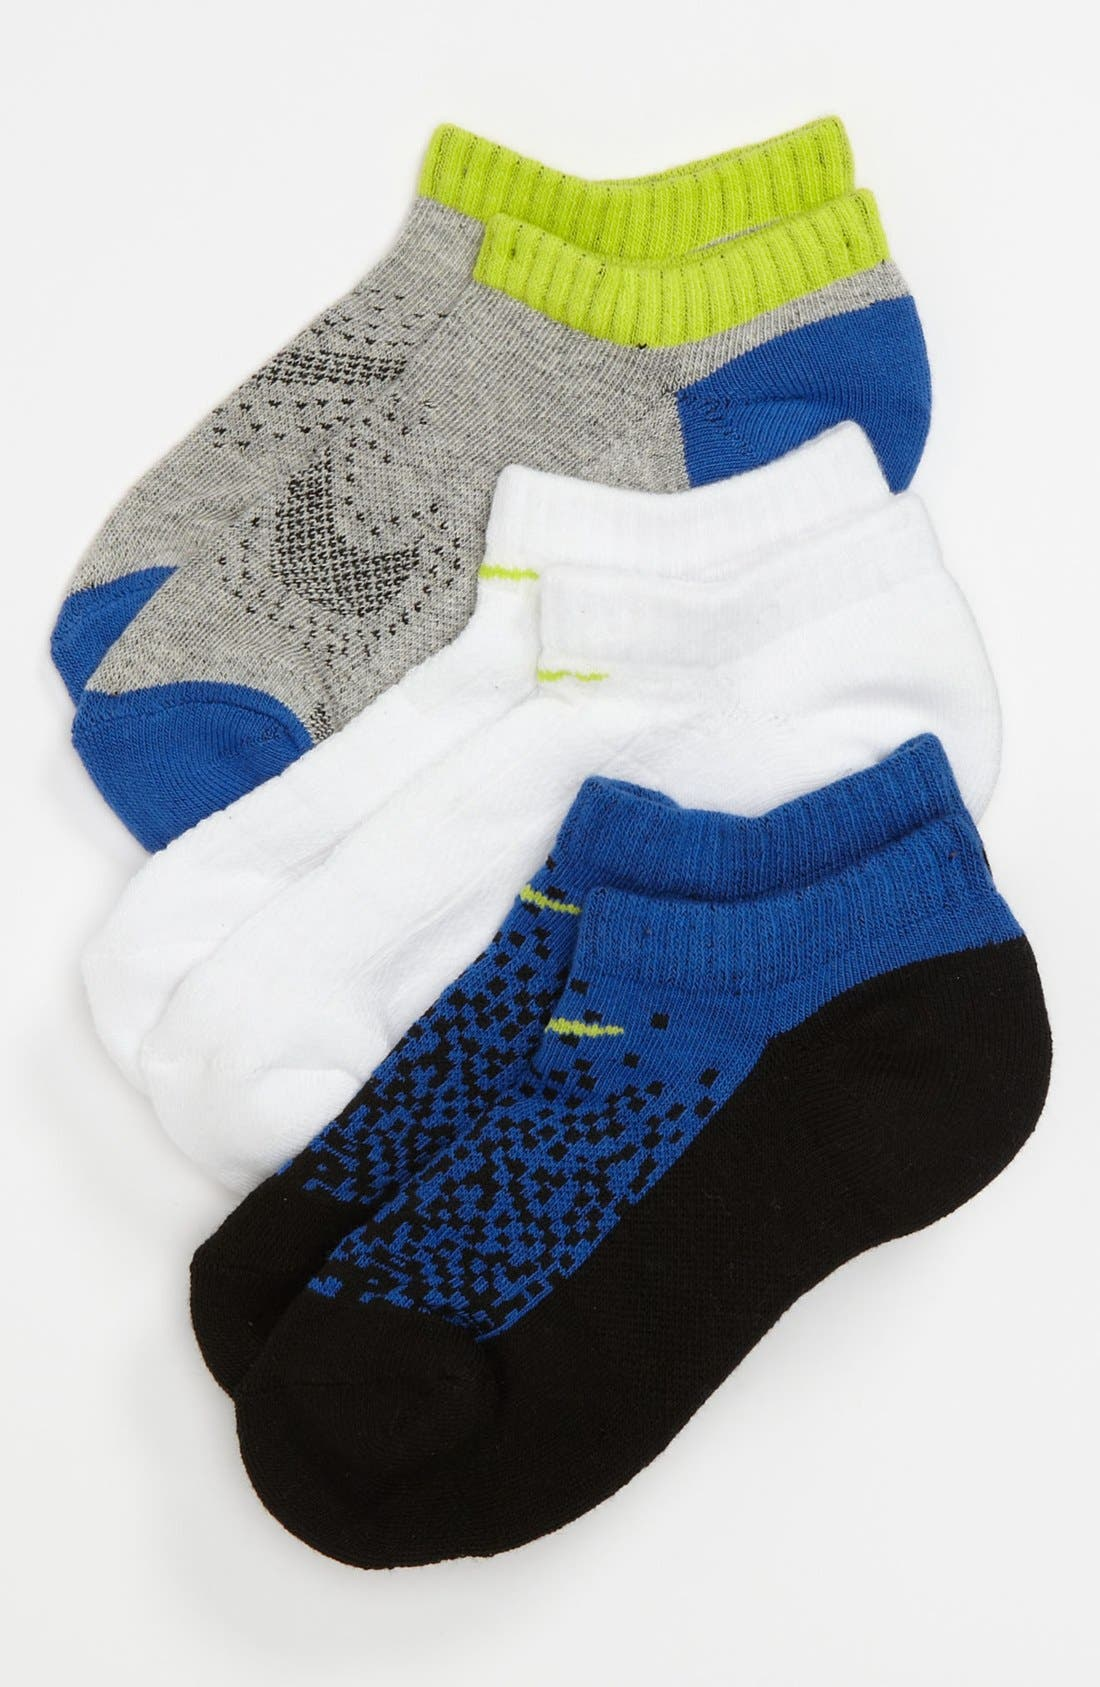 Alternate Image 1 Selected - NIKE 3 PACK GRAPHIC COTTON SOCKS